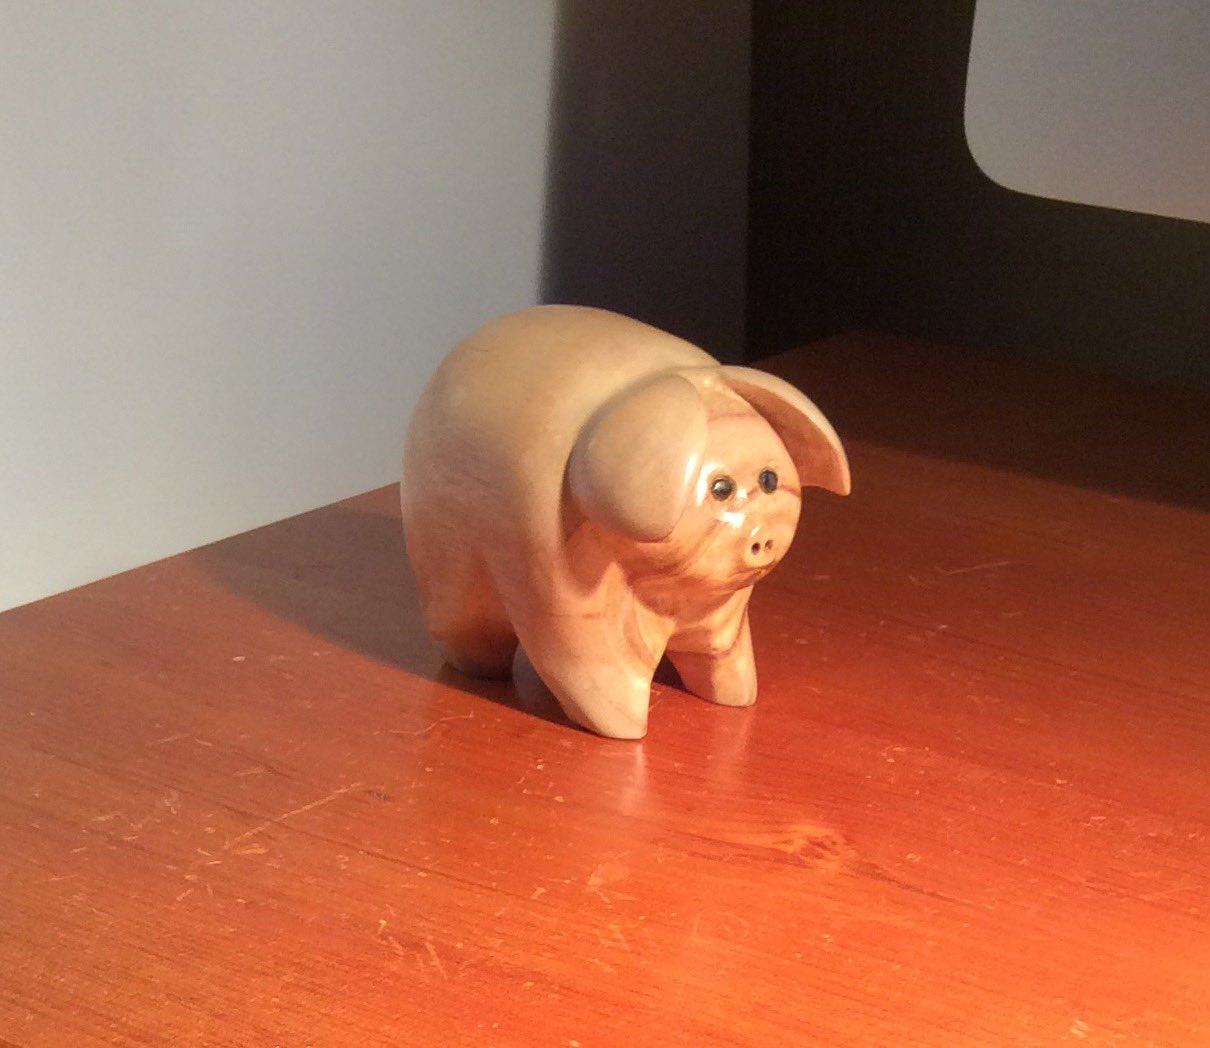 Small Eucalyptus pig carved just because  from waste 😊 https://t.co/fbuUn2Ux7U